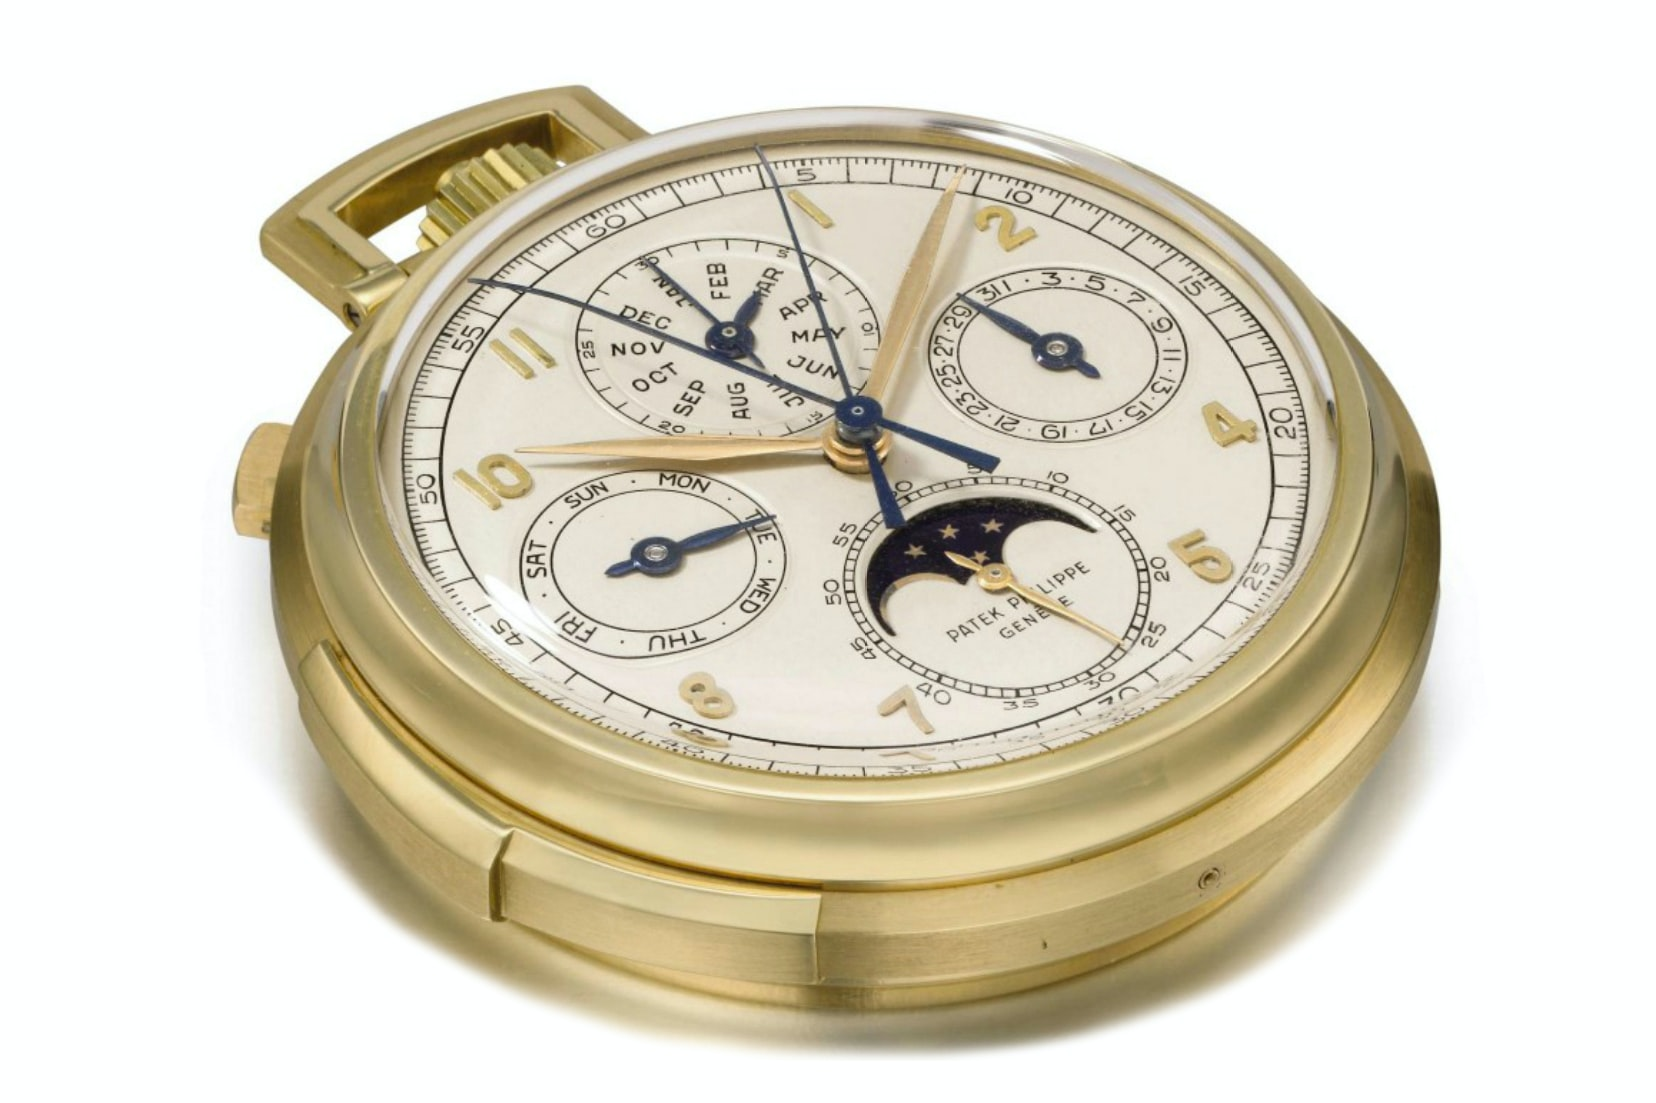 Found: The Dalai Lama's Patek Philippe, Gifted By FDR Via An OSS Officer Who Was The Grandson Of Leo Tolstoy (Seriously) Found: The Dalai Lama's Patek Philippe, Gifted By FDR Via An OSS Officer Who Was The Grandson Of Leo Tolstoy (Seriously) 45